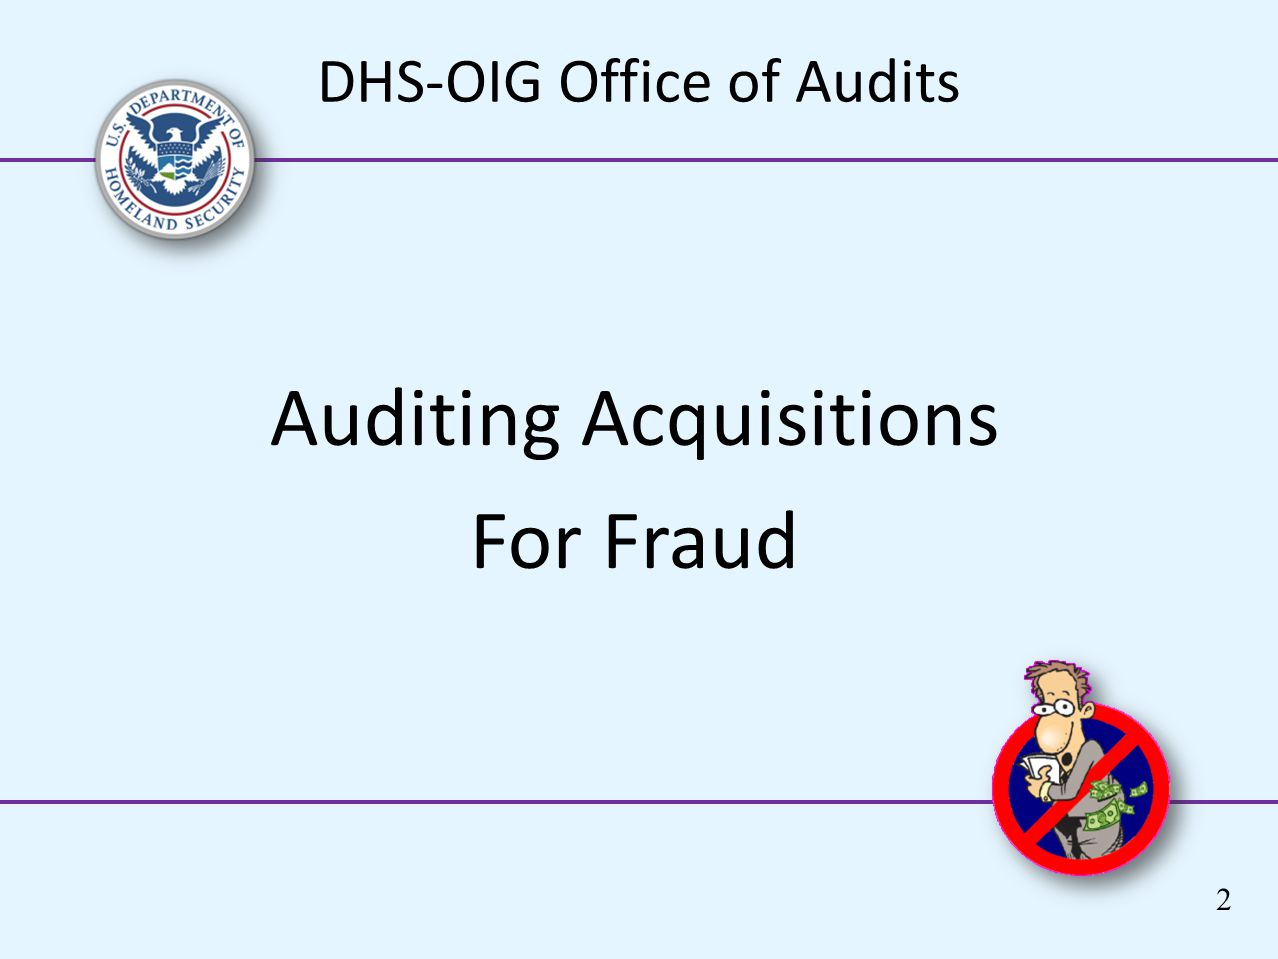 Auditing Acquisitions For Fraud